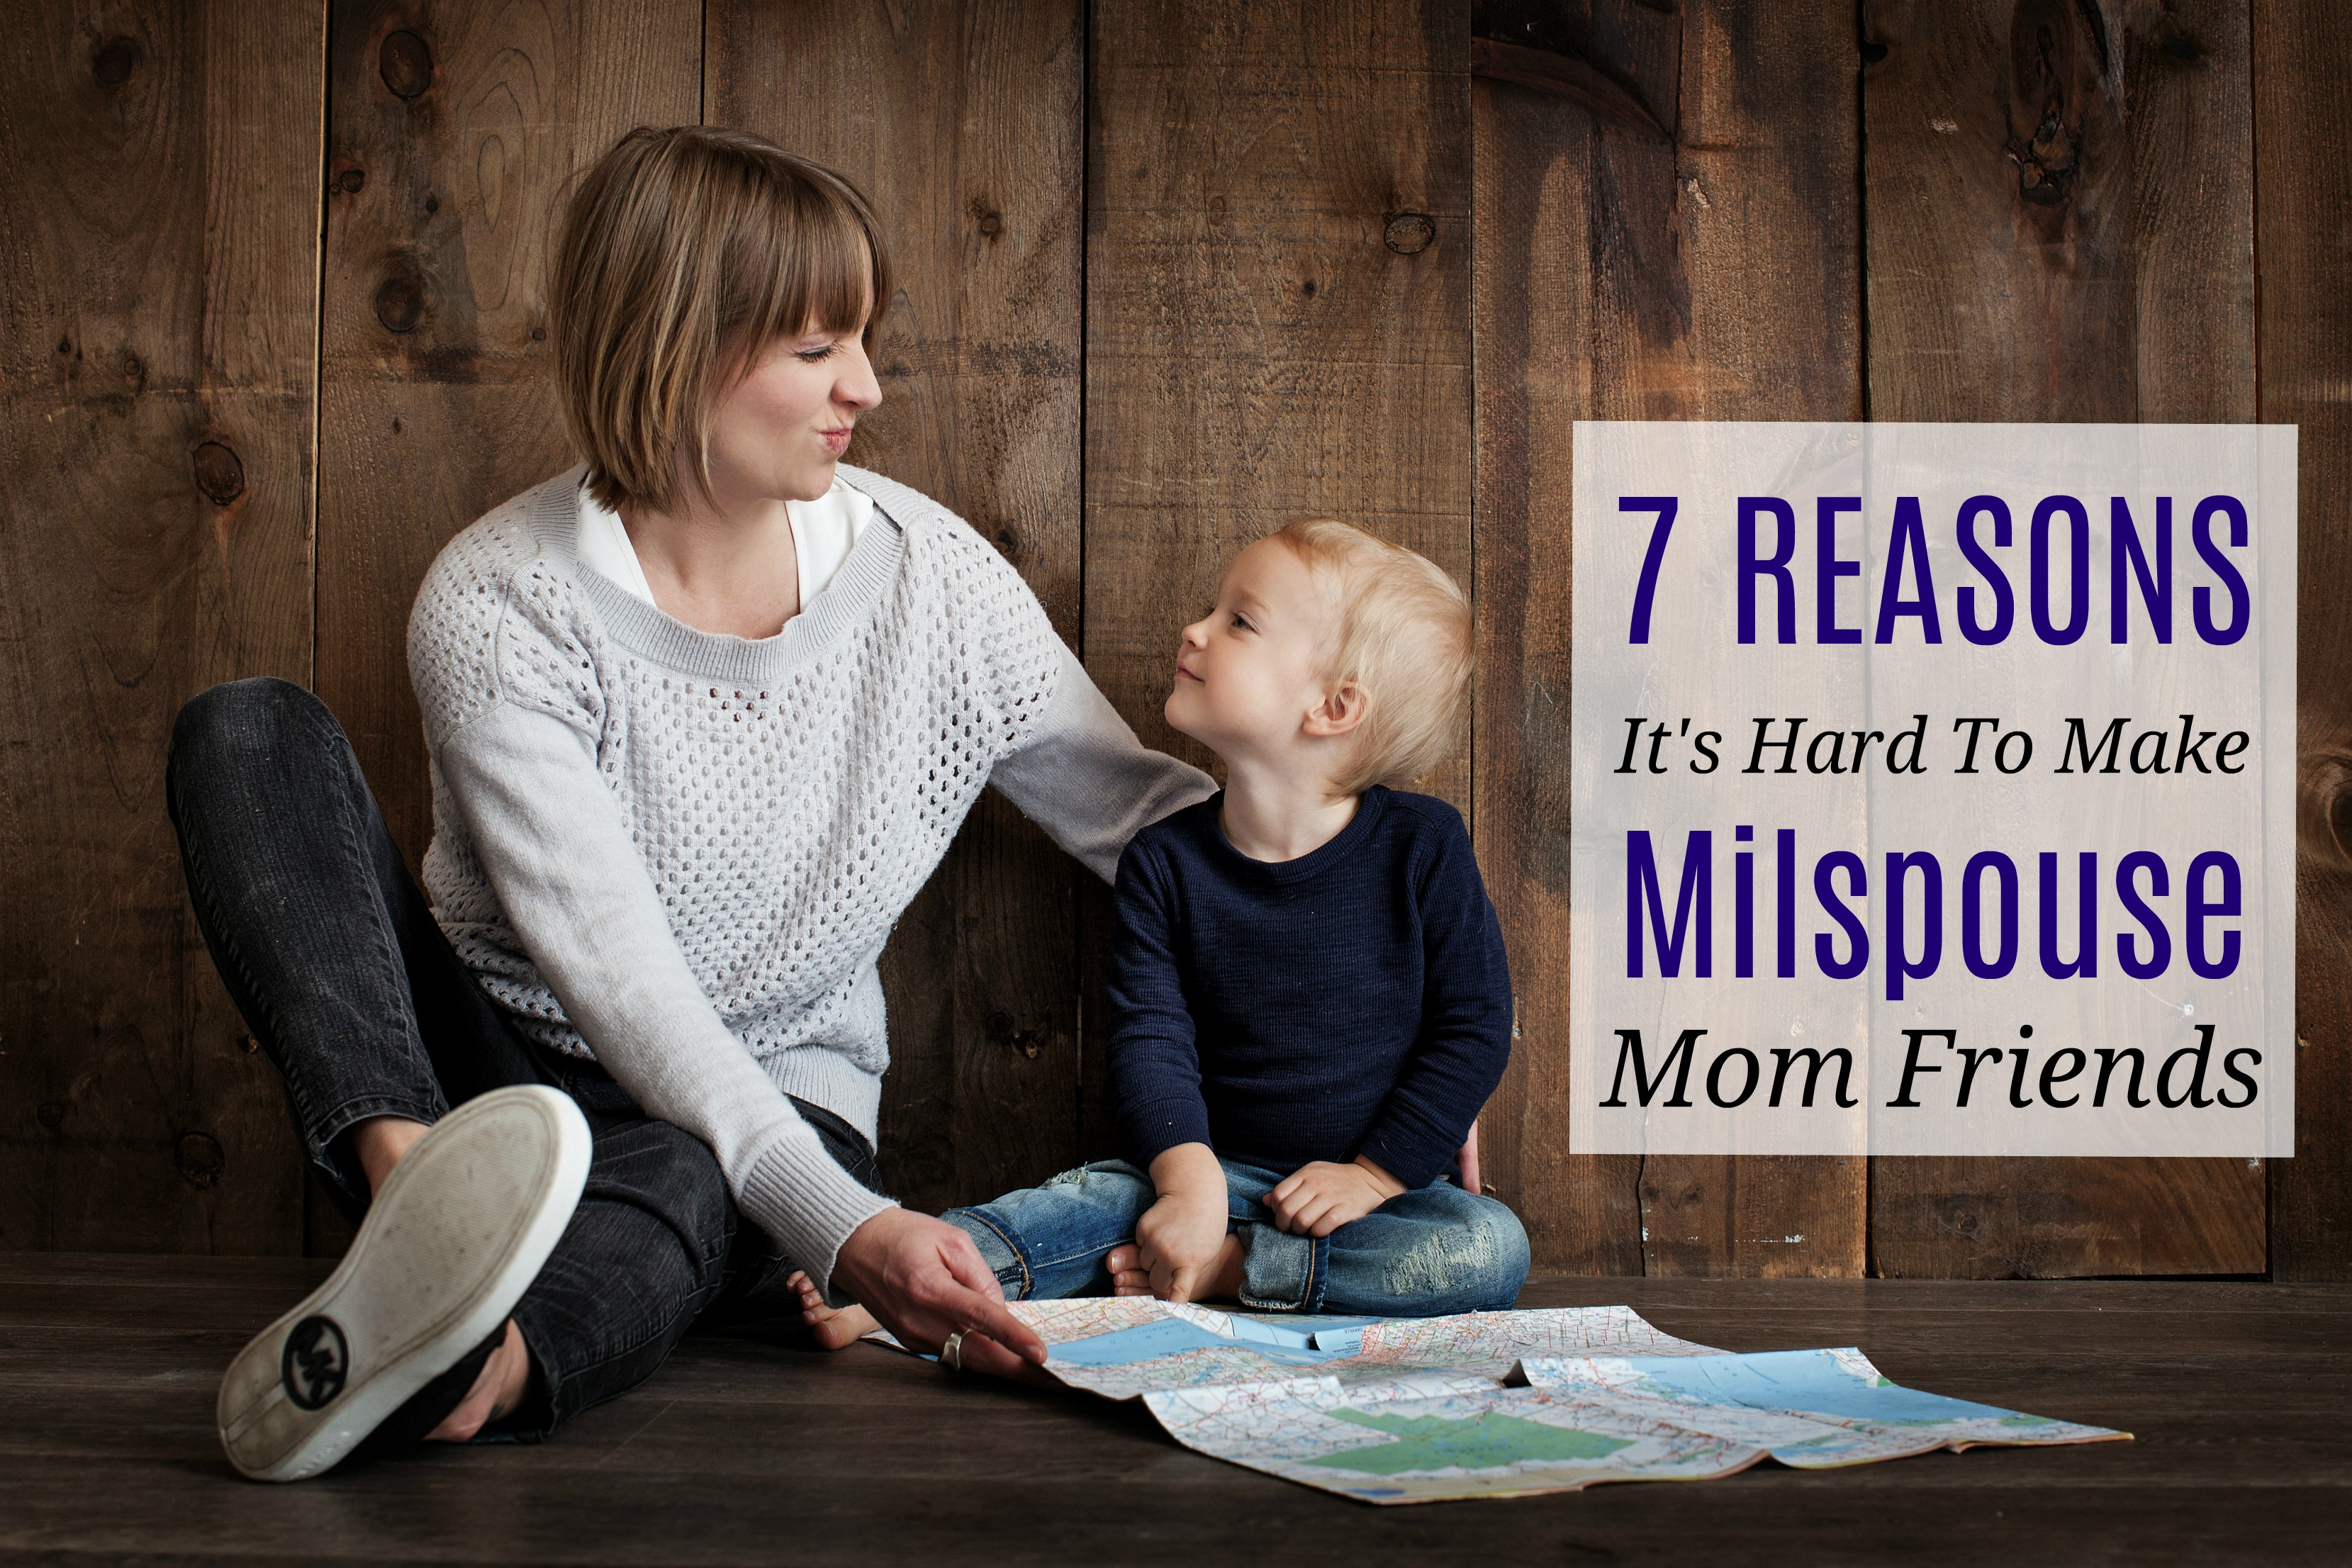 7 Reasons It's Hard to Make Milspouse Mom Friends